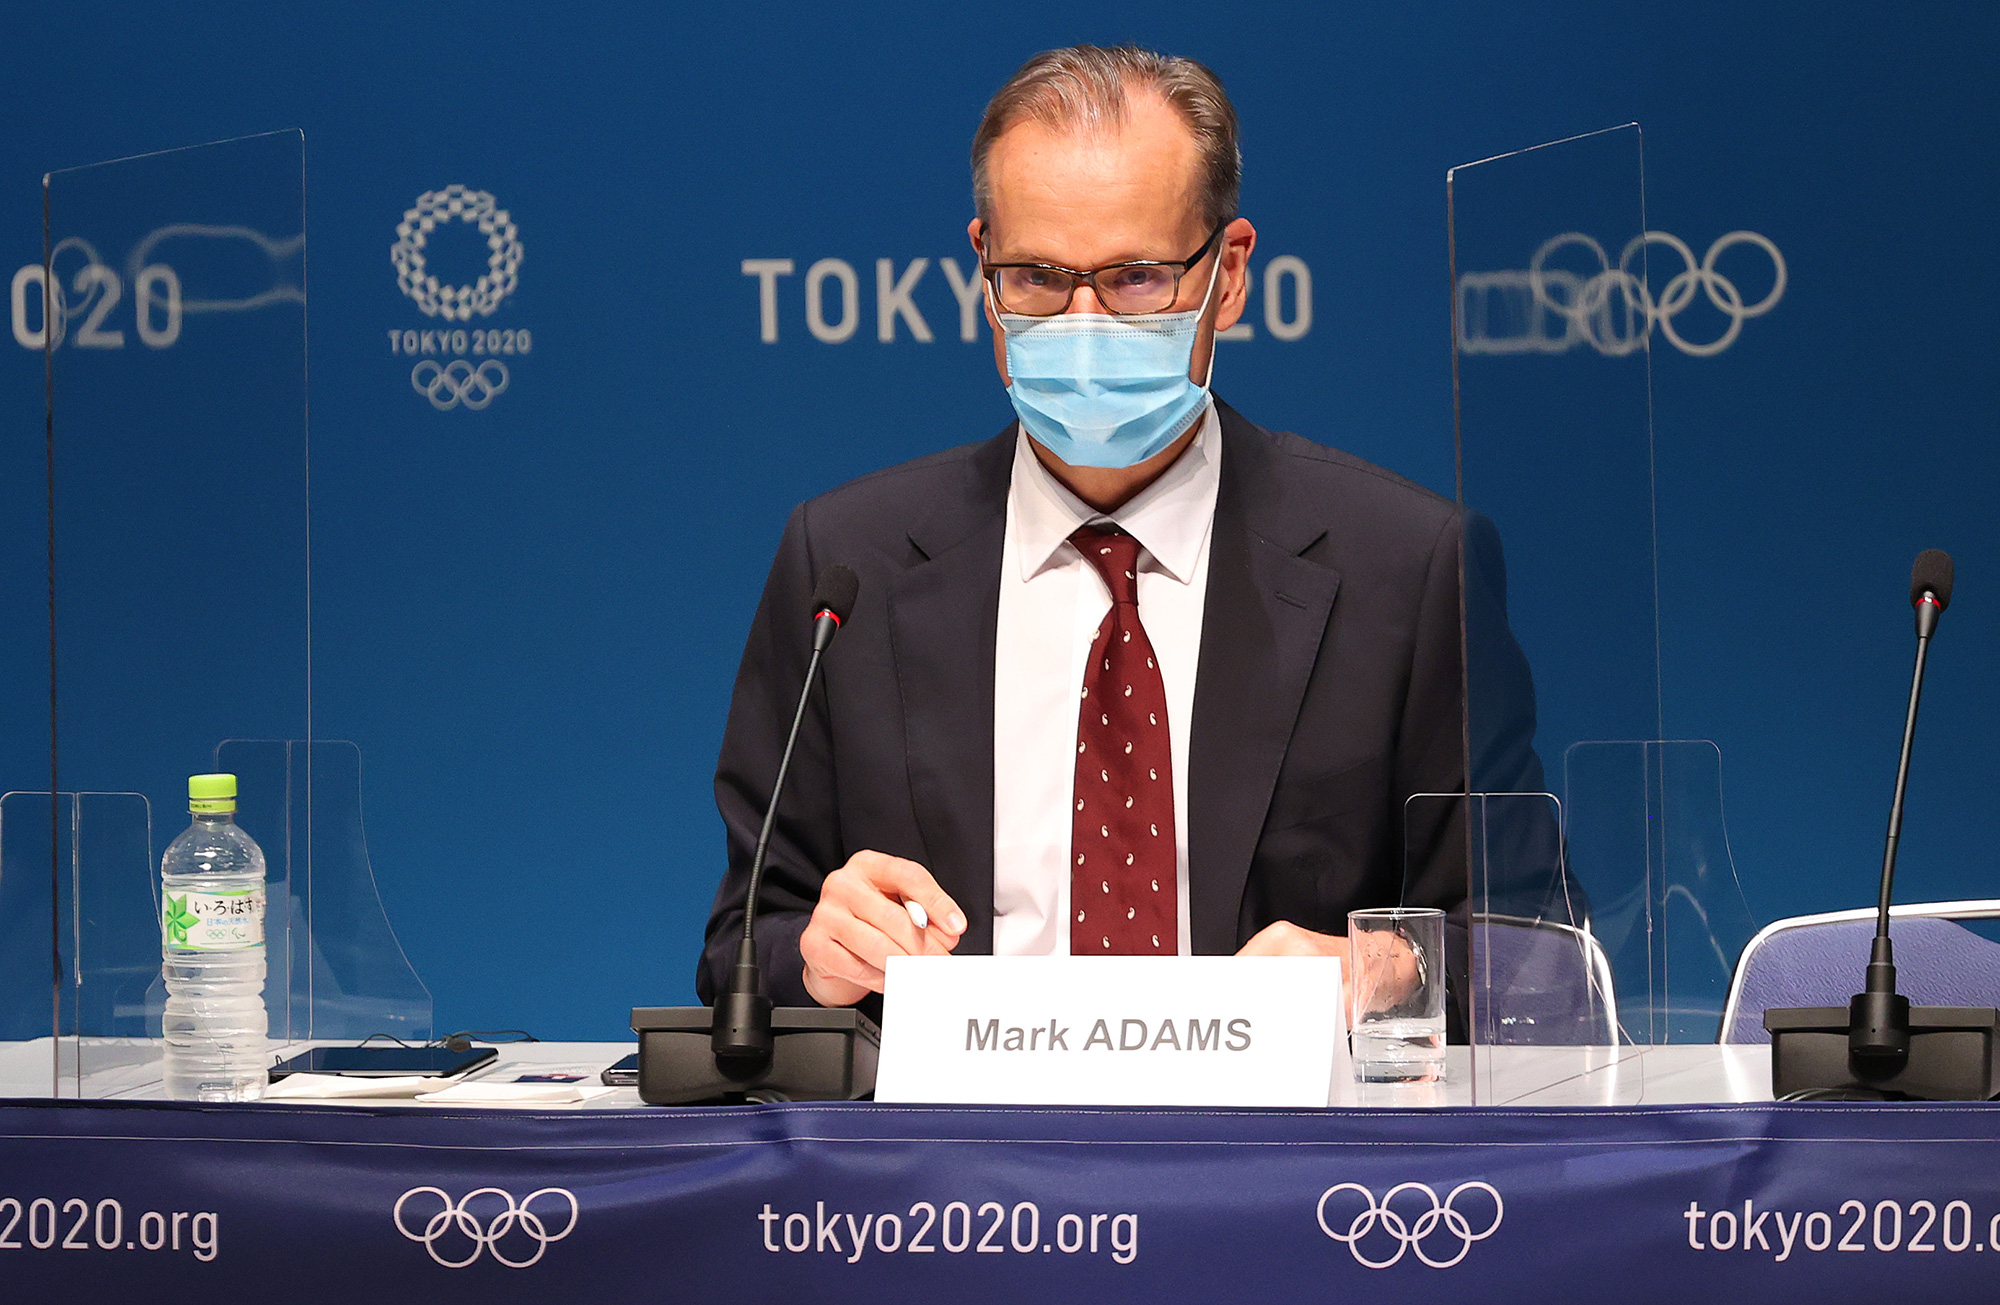 Mark Adams, director of communications at the IOC, speaks to the media ahead of the Tokyo 2020 Olympic Games on July 21 in Tokyo.